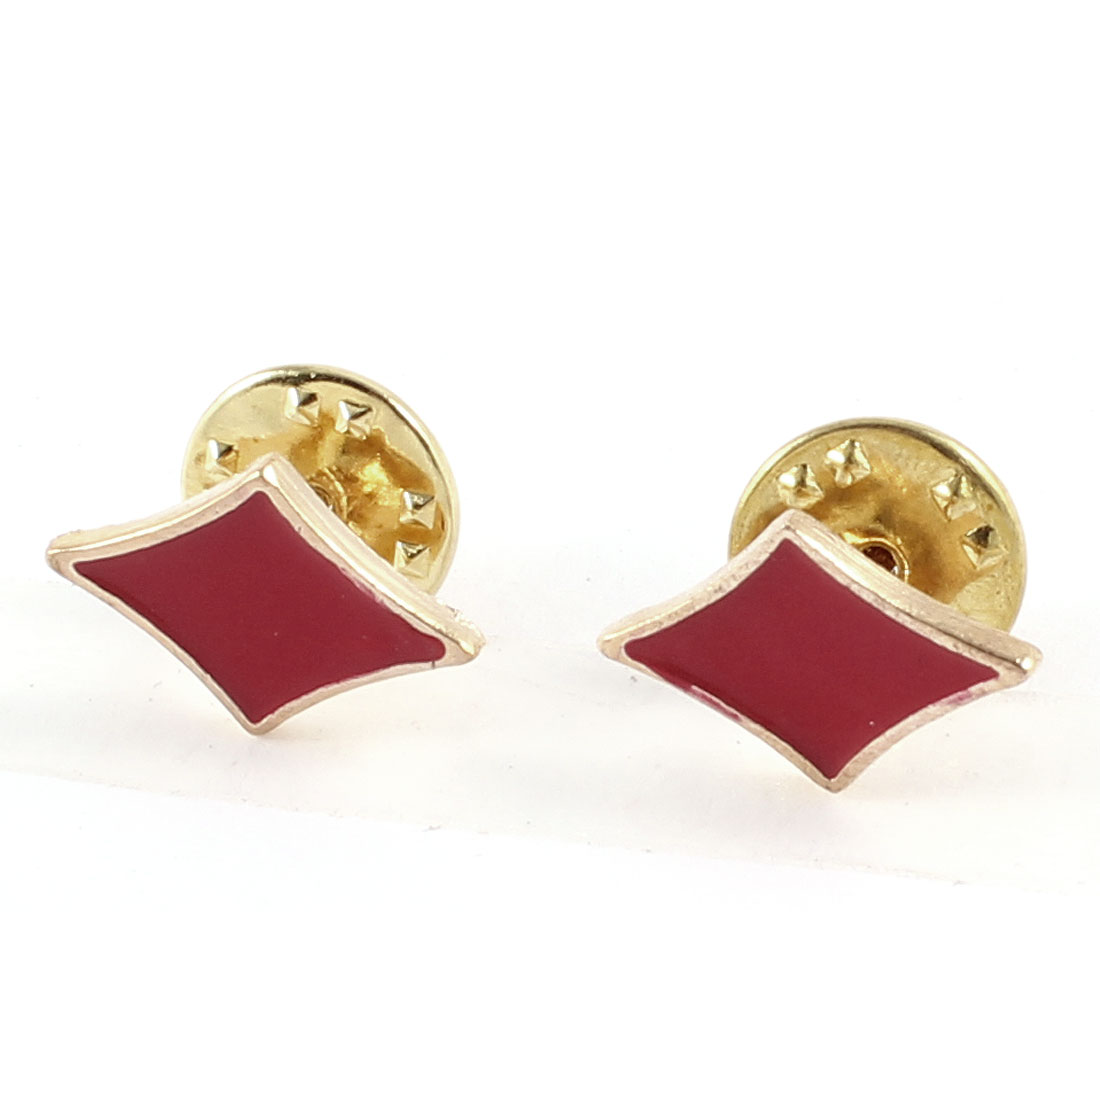 Pair Ear Decoration Red Rhombus Shape Decor Brooch for Lady